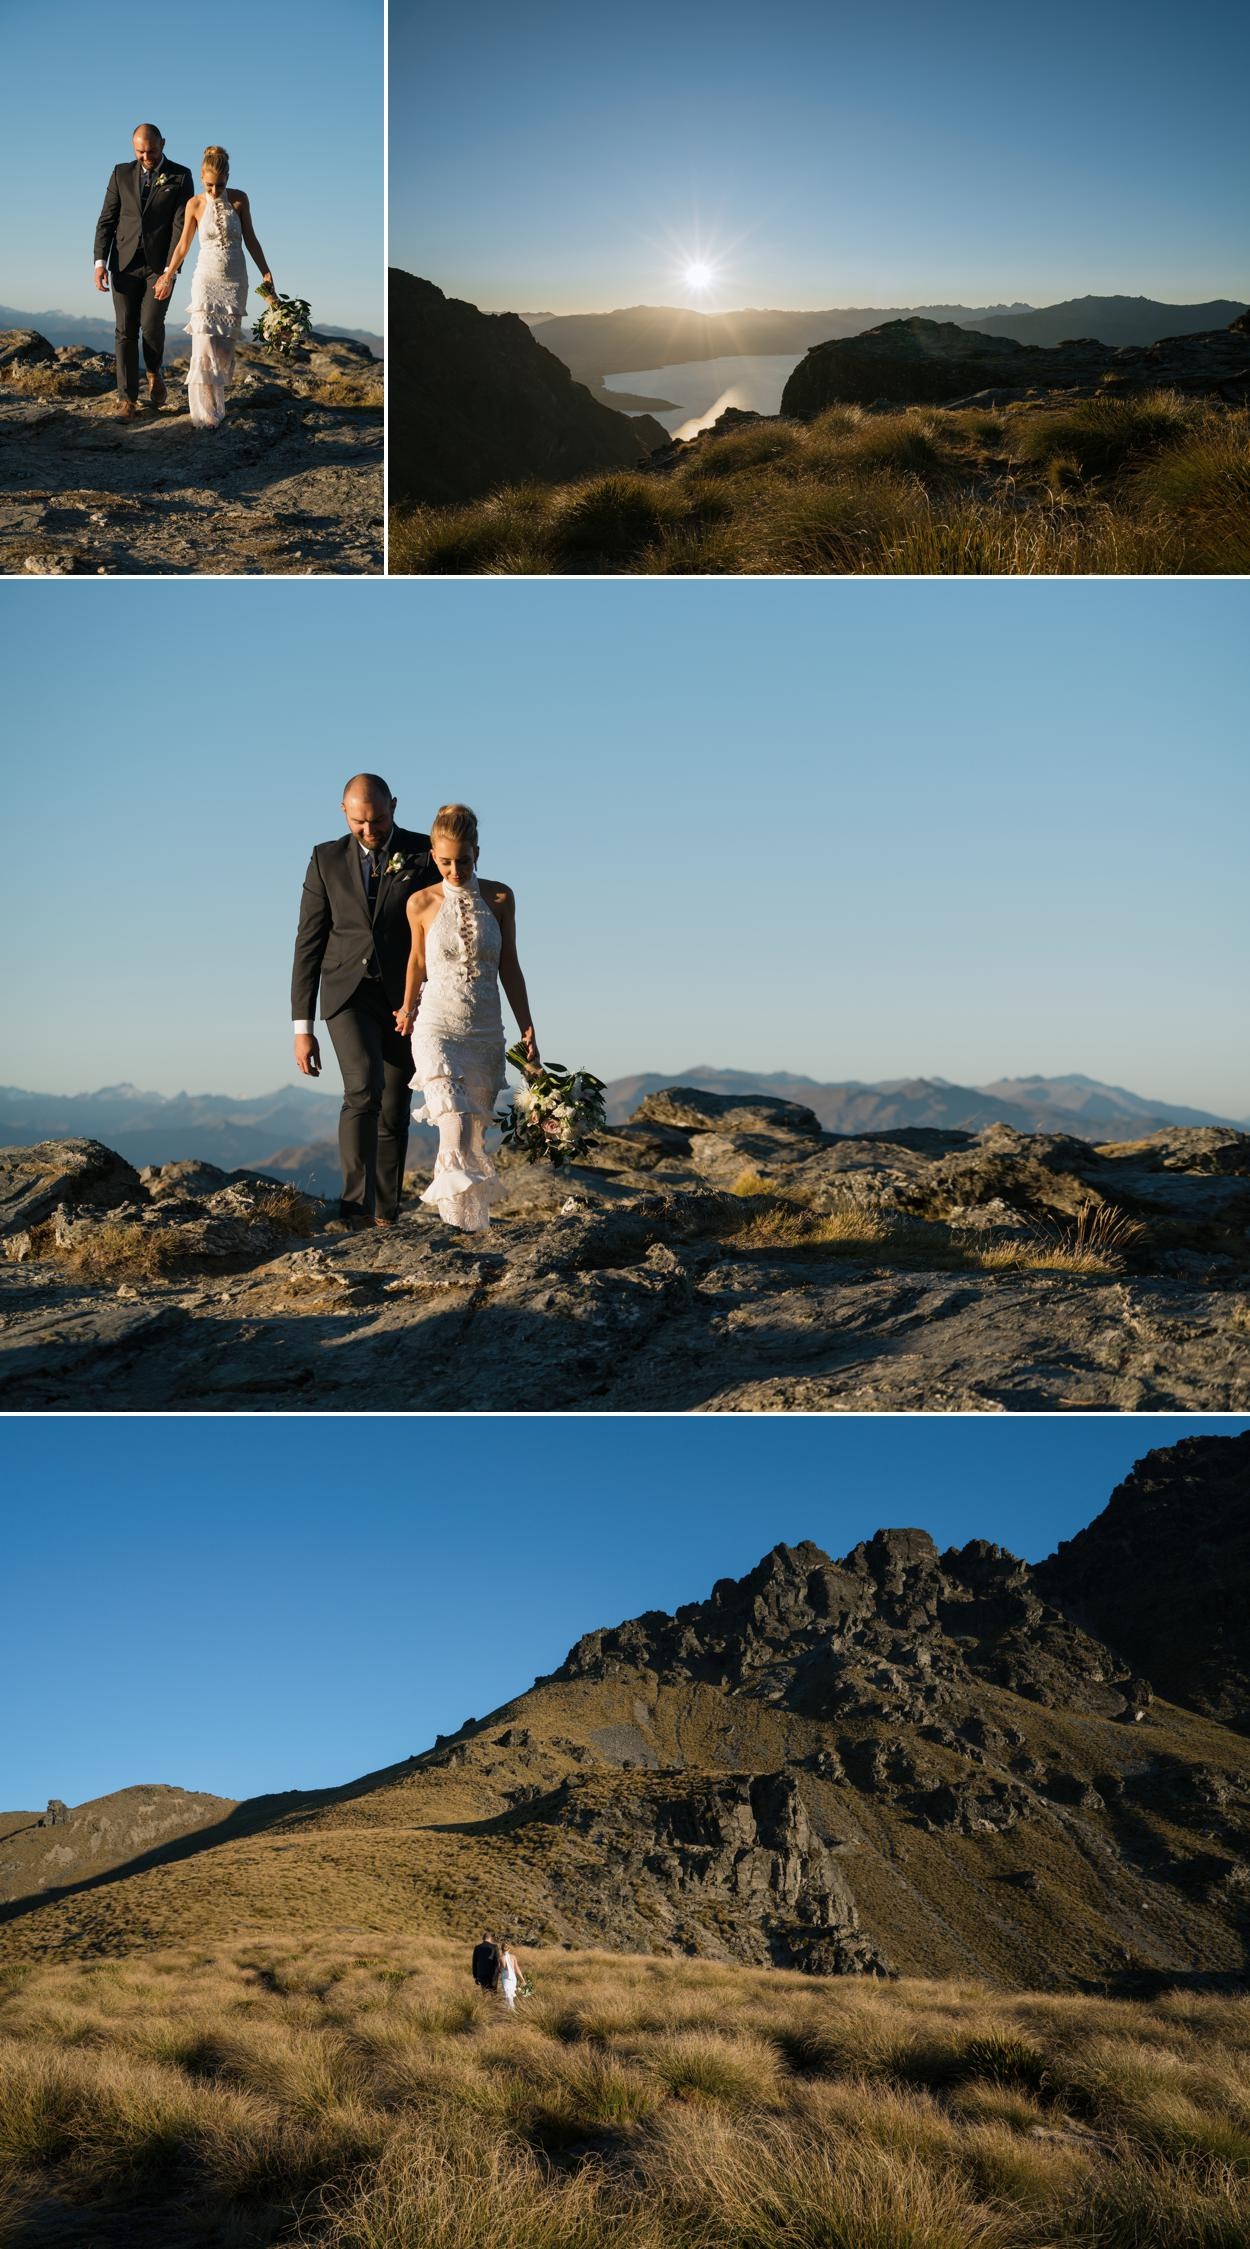 sunset mountain wedding photographer